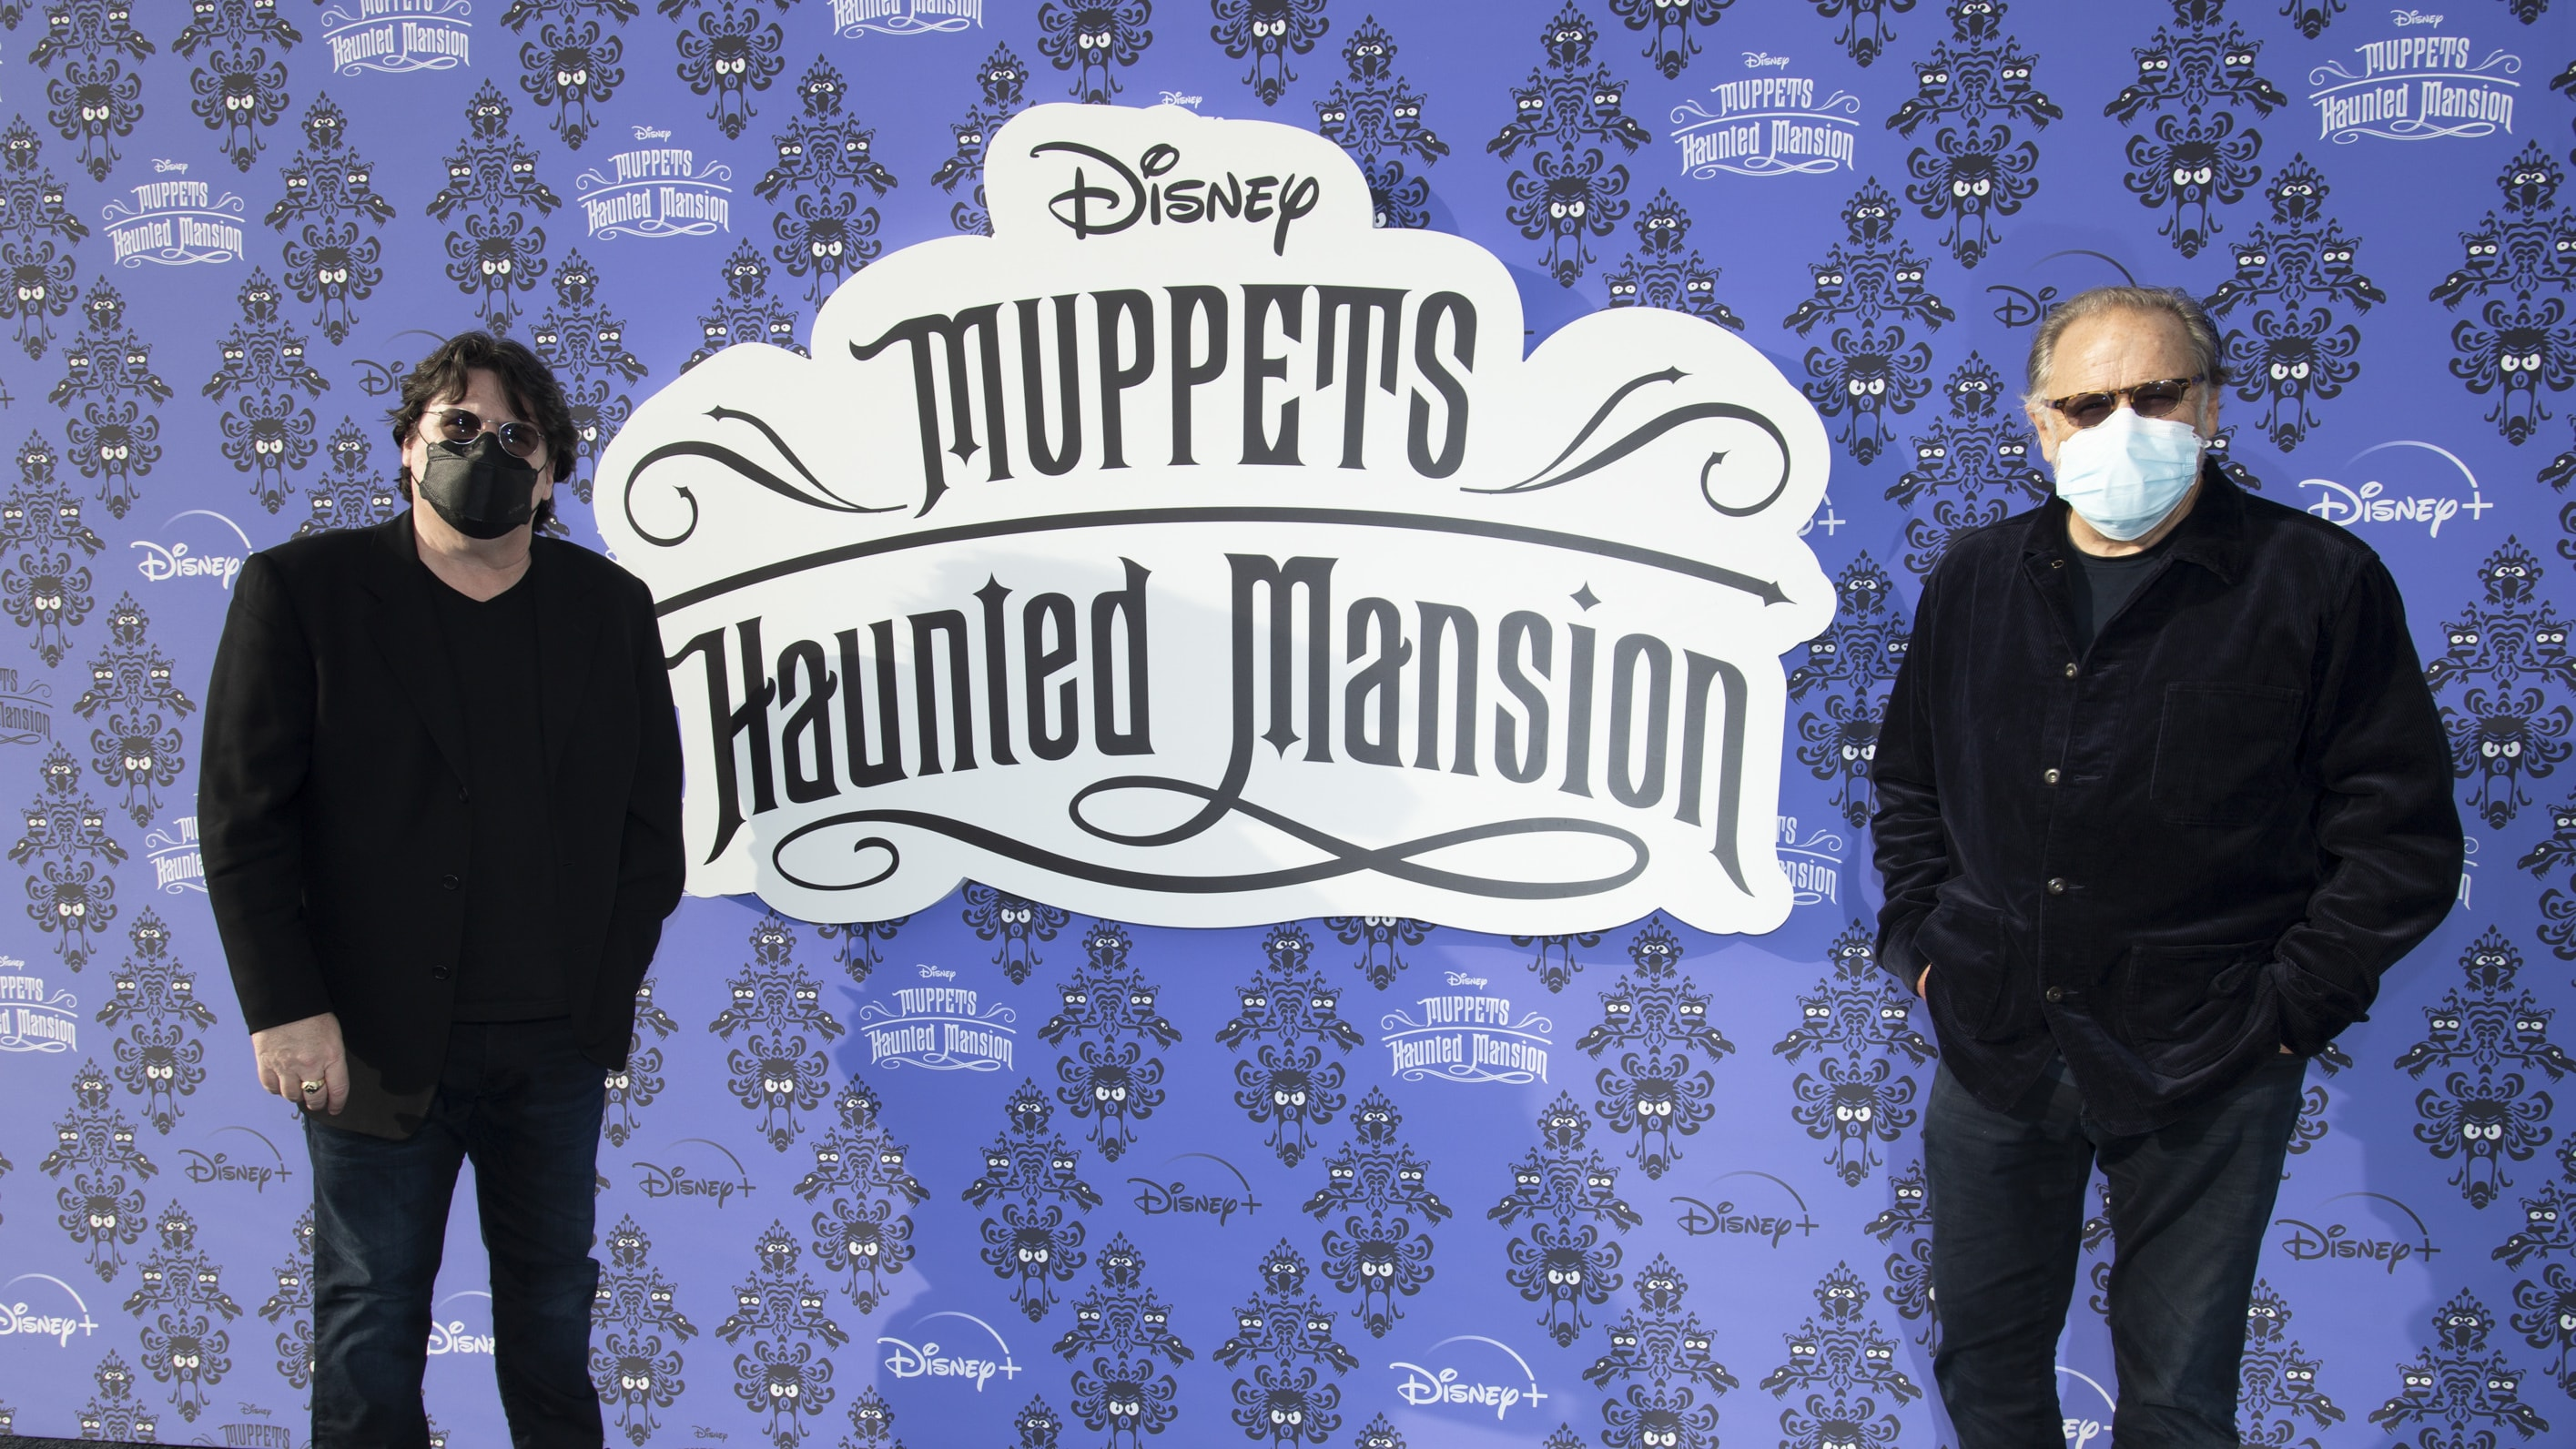 """MUPPETS HAUNTED MANSION - Stars of The Muppets first-ever Halloween special """"Muppets Haunted Mansion"""" attended the Drive-In Premiere Event at West Los Angeles College, Thursday, October 7. """"Muppets Haunted Mansion"""" is available to stream Friday, October 8 on Disney+. (Disney/Richard Harbaugh) BILL BARRETTA (PUPPETEER), DAVE GOELZ (PUPPETEER)"""